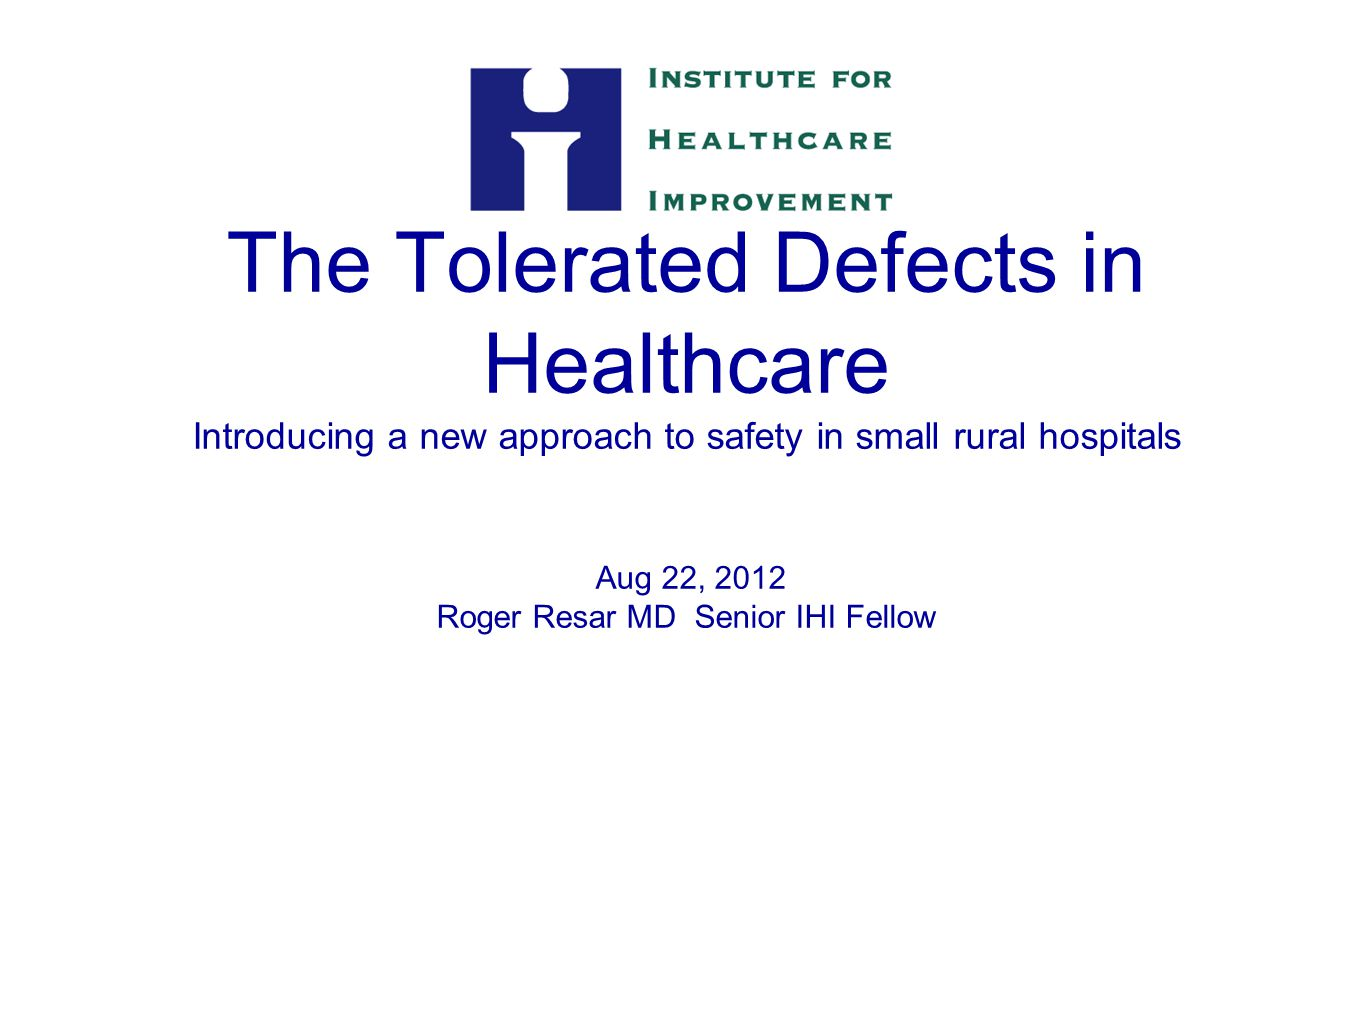 The Tolerated Defects in Healthcare Introducing a new approach to safety in small rural hospitals Aug 22, 2012 Roger Resar MD Senior IHI Fellow 1